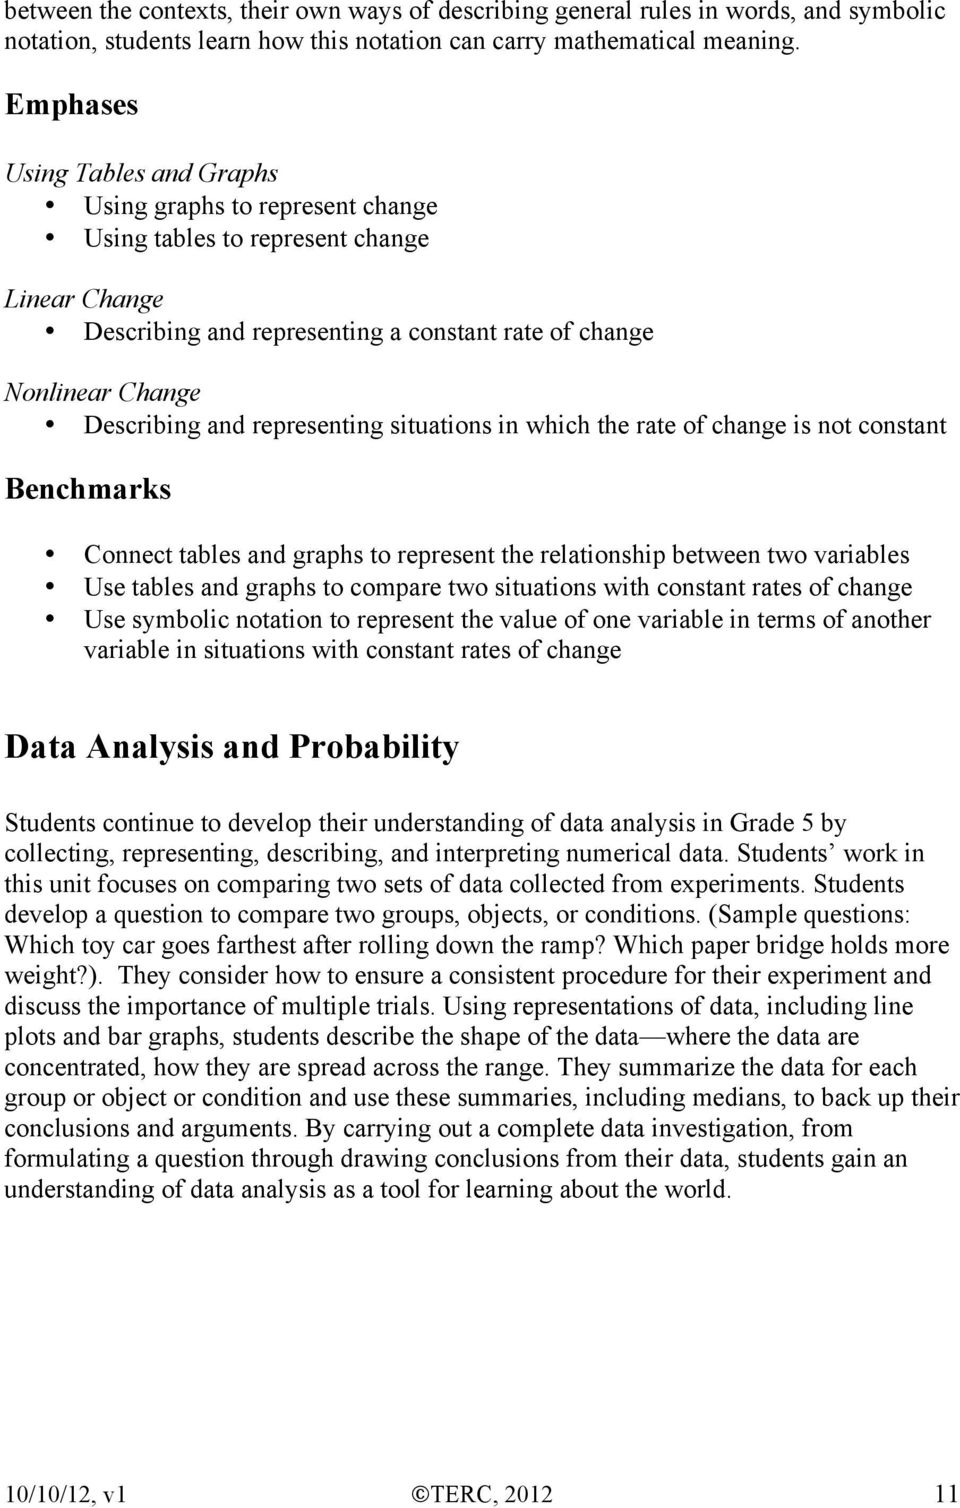 representing situations in which the rate of change is not constant Benchmarks Connect tables and graphs to represent the relationship between two variables Use tables and graphs to compare two